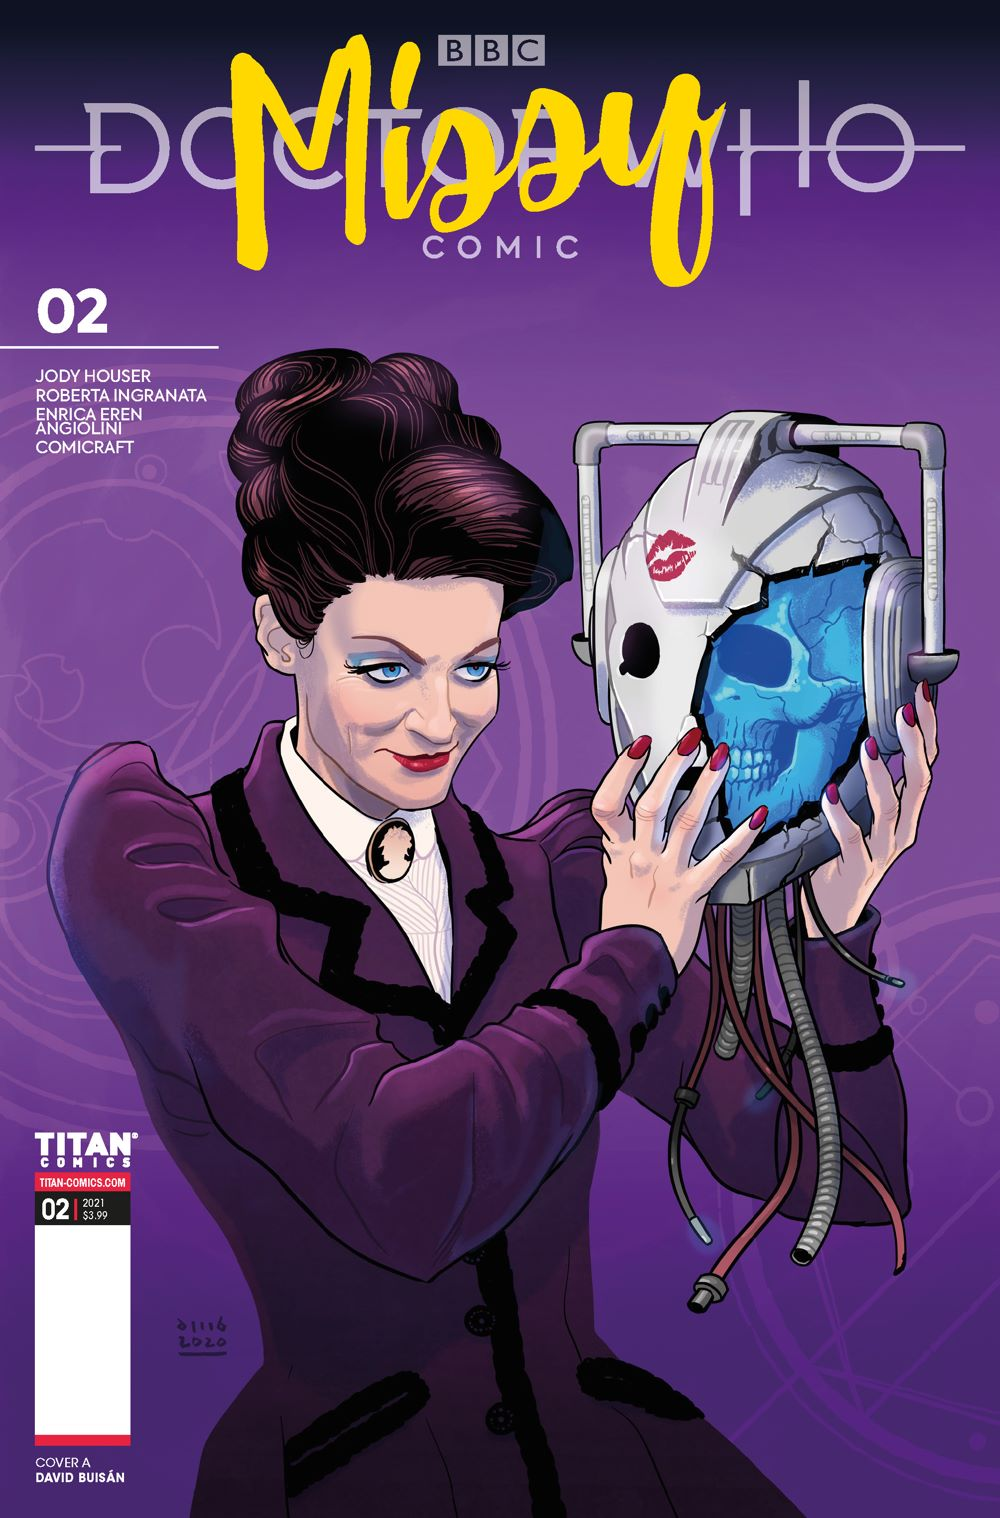 DW_Missy_2_COVERS_Page_1 ComicList Previews: DOCTOR WHO MISSY #2